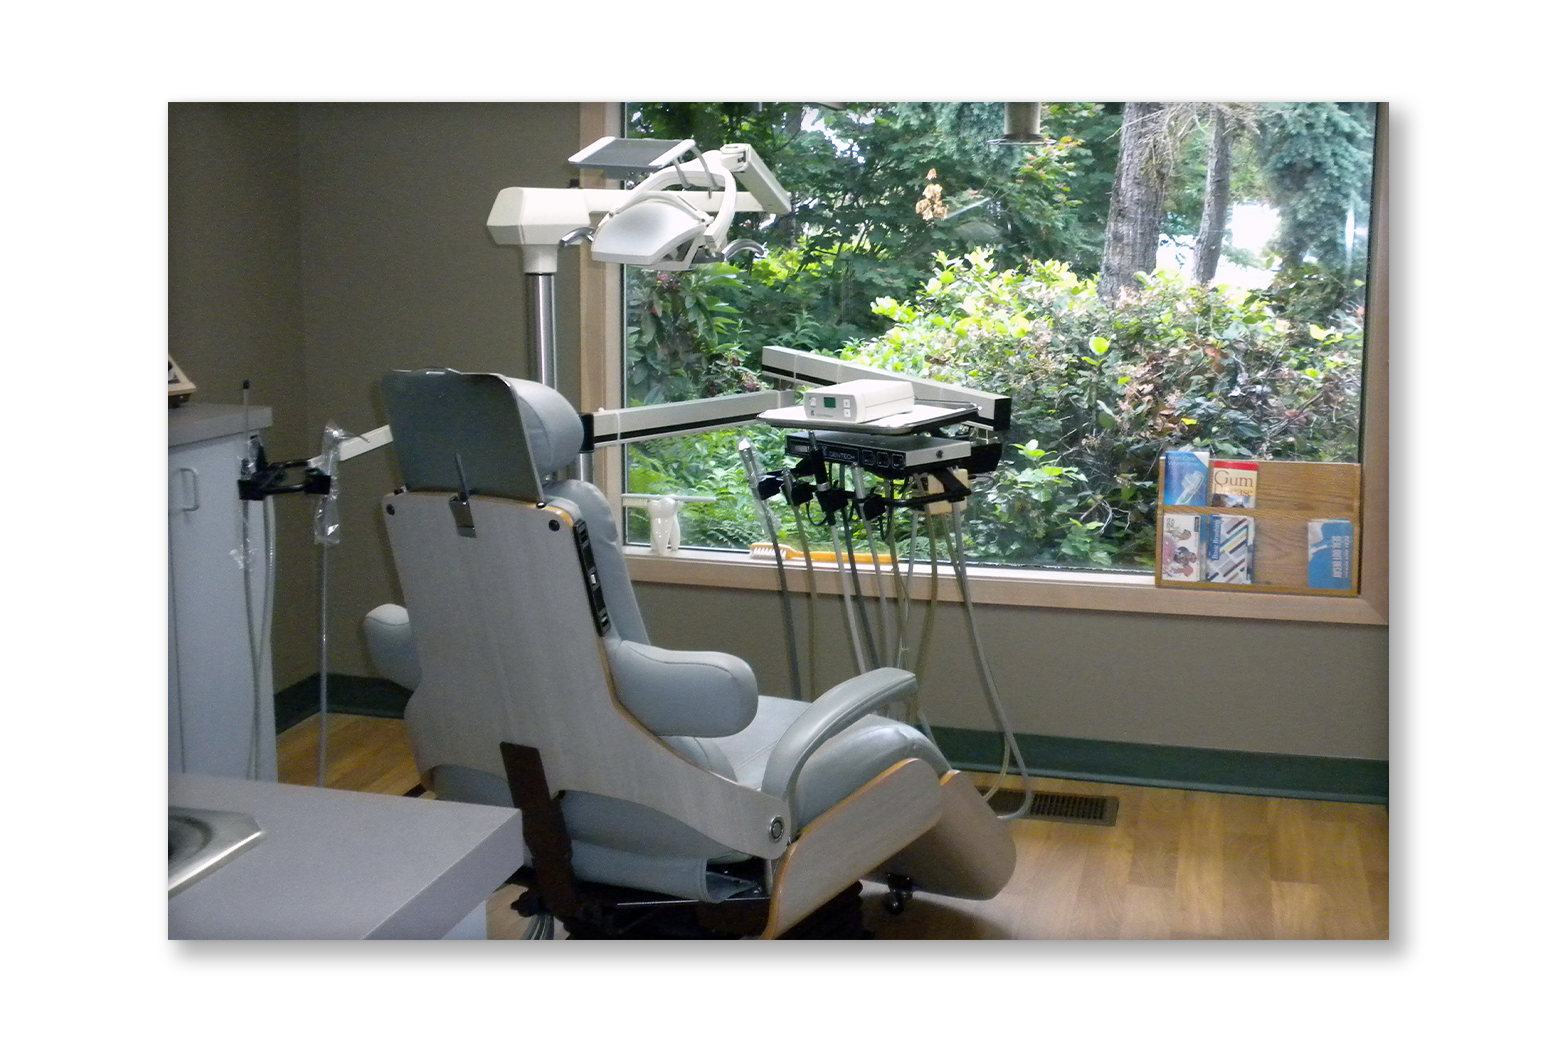 One of our exam rooms.